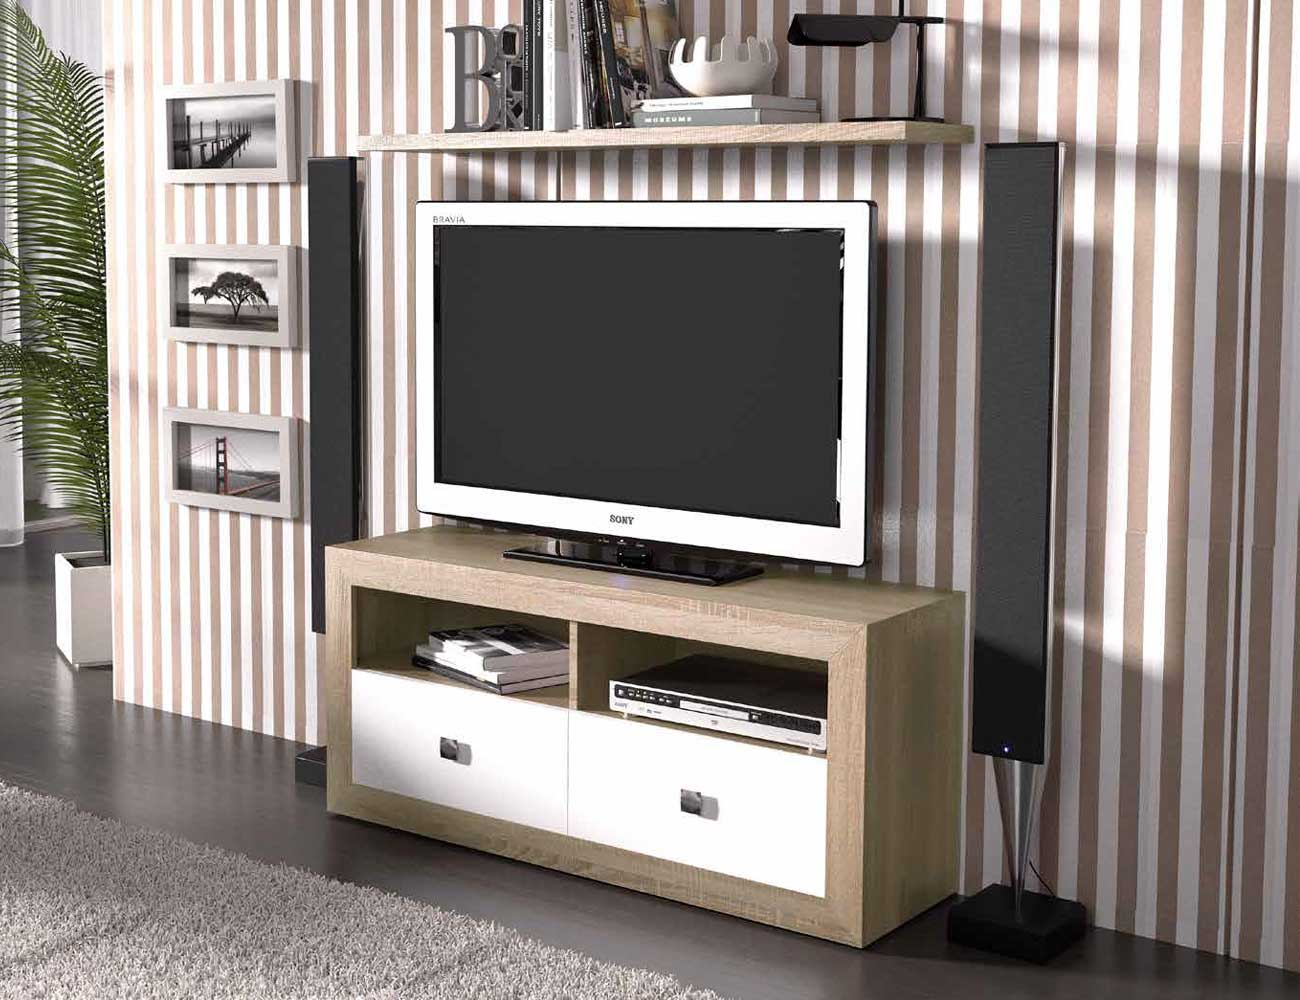 Mueble Colonial Blanco Mueble Salon Colonial Mueble Salon Colonial Cambrian